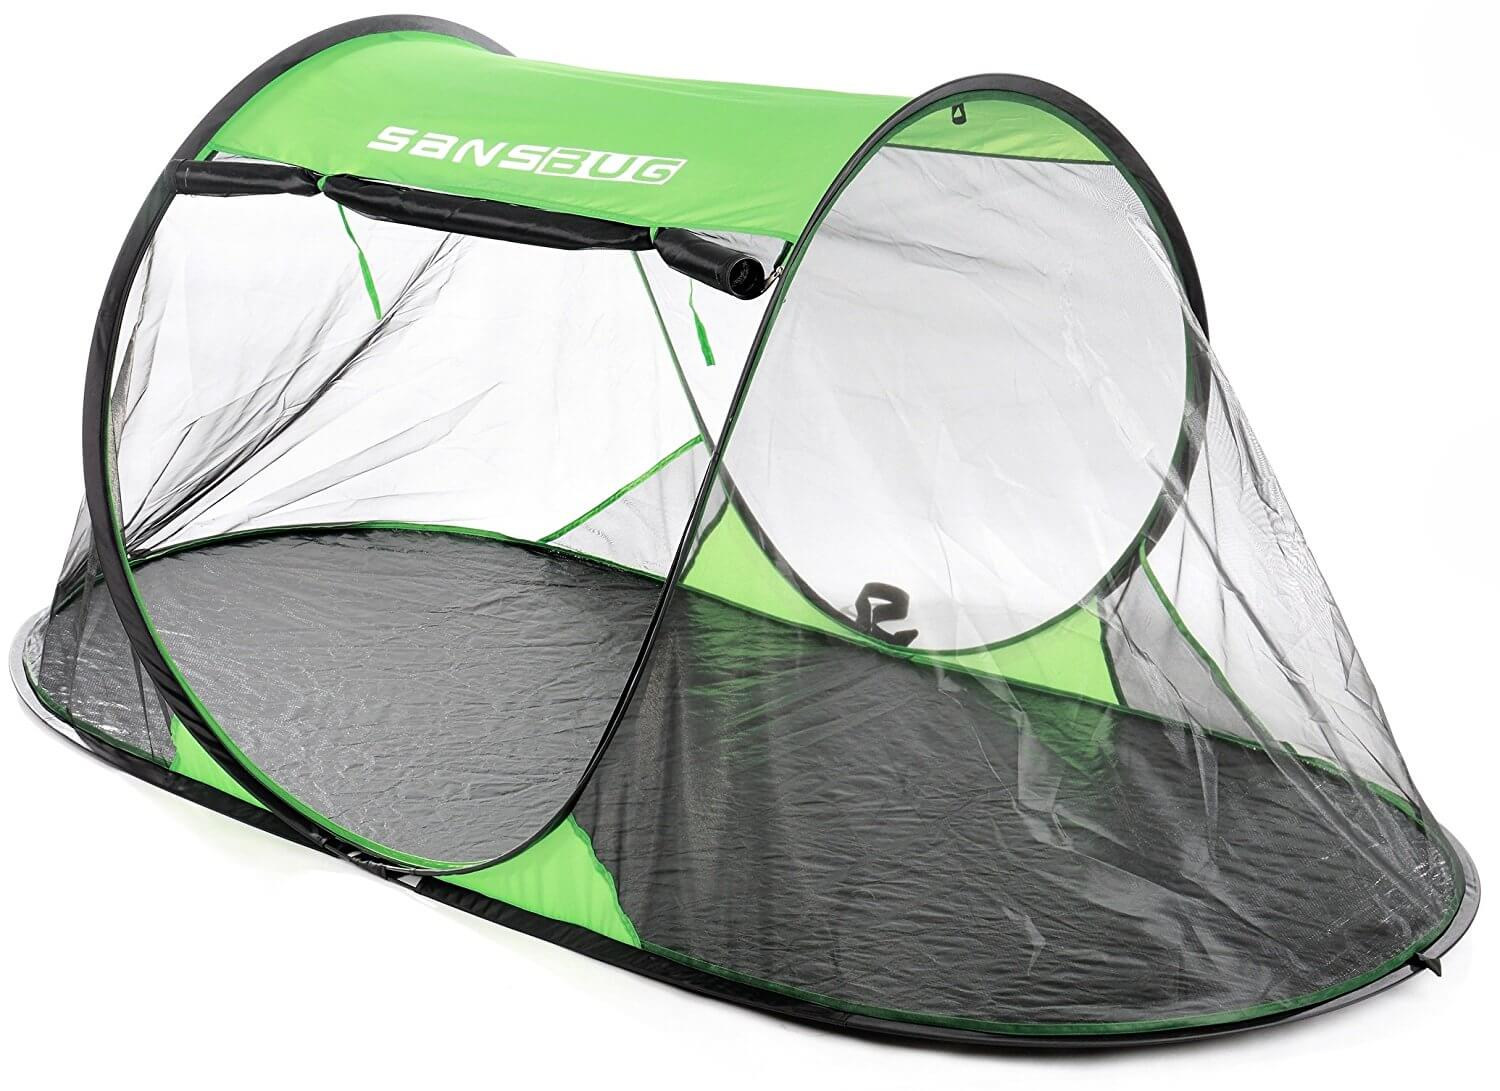 3-person screen tent